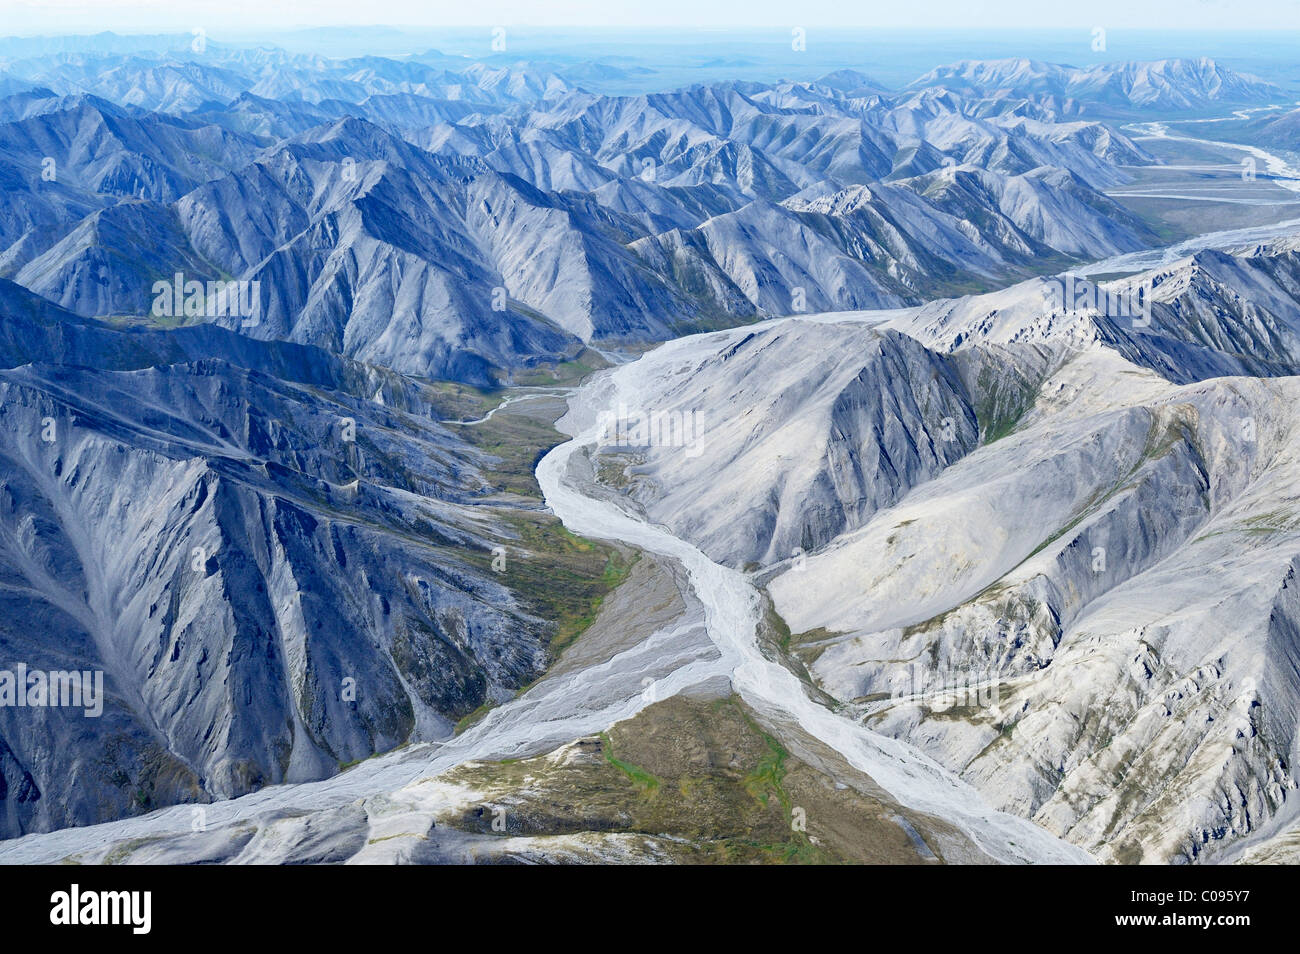 Aerial of the rugged Philip Smith Mountains portion of the Brooks Range in ANWR, Arctic Alaska, Summer, HDR - Stock Image